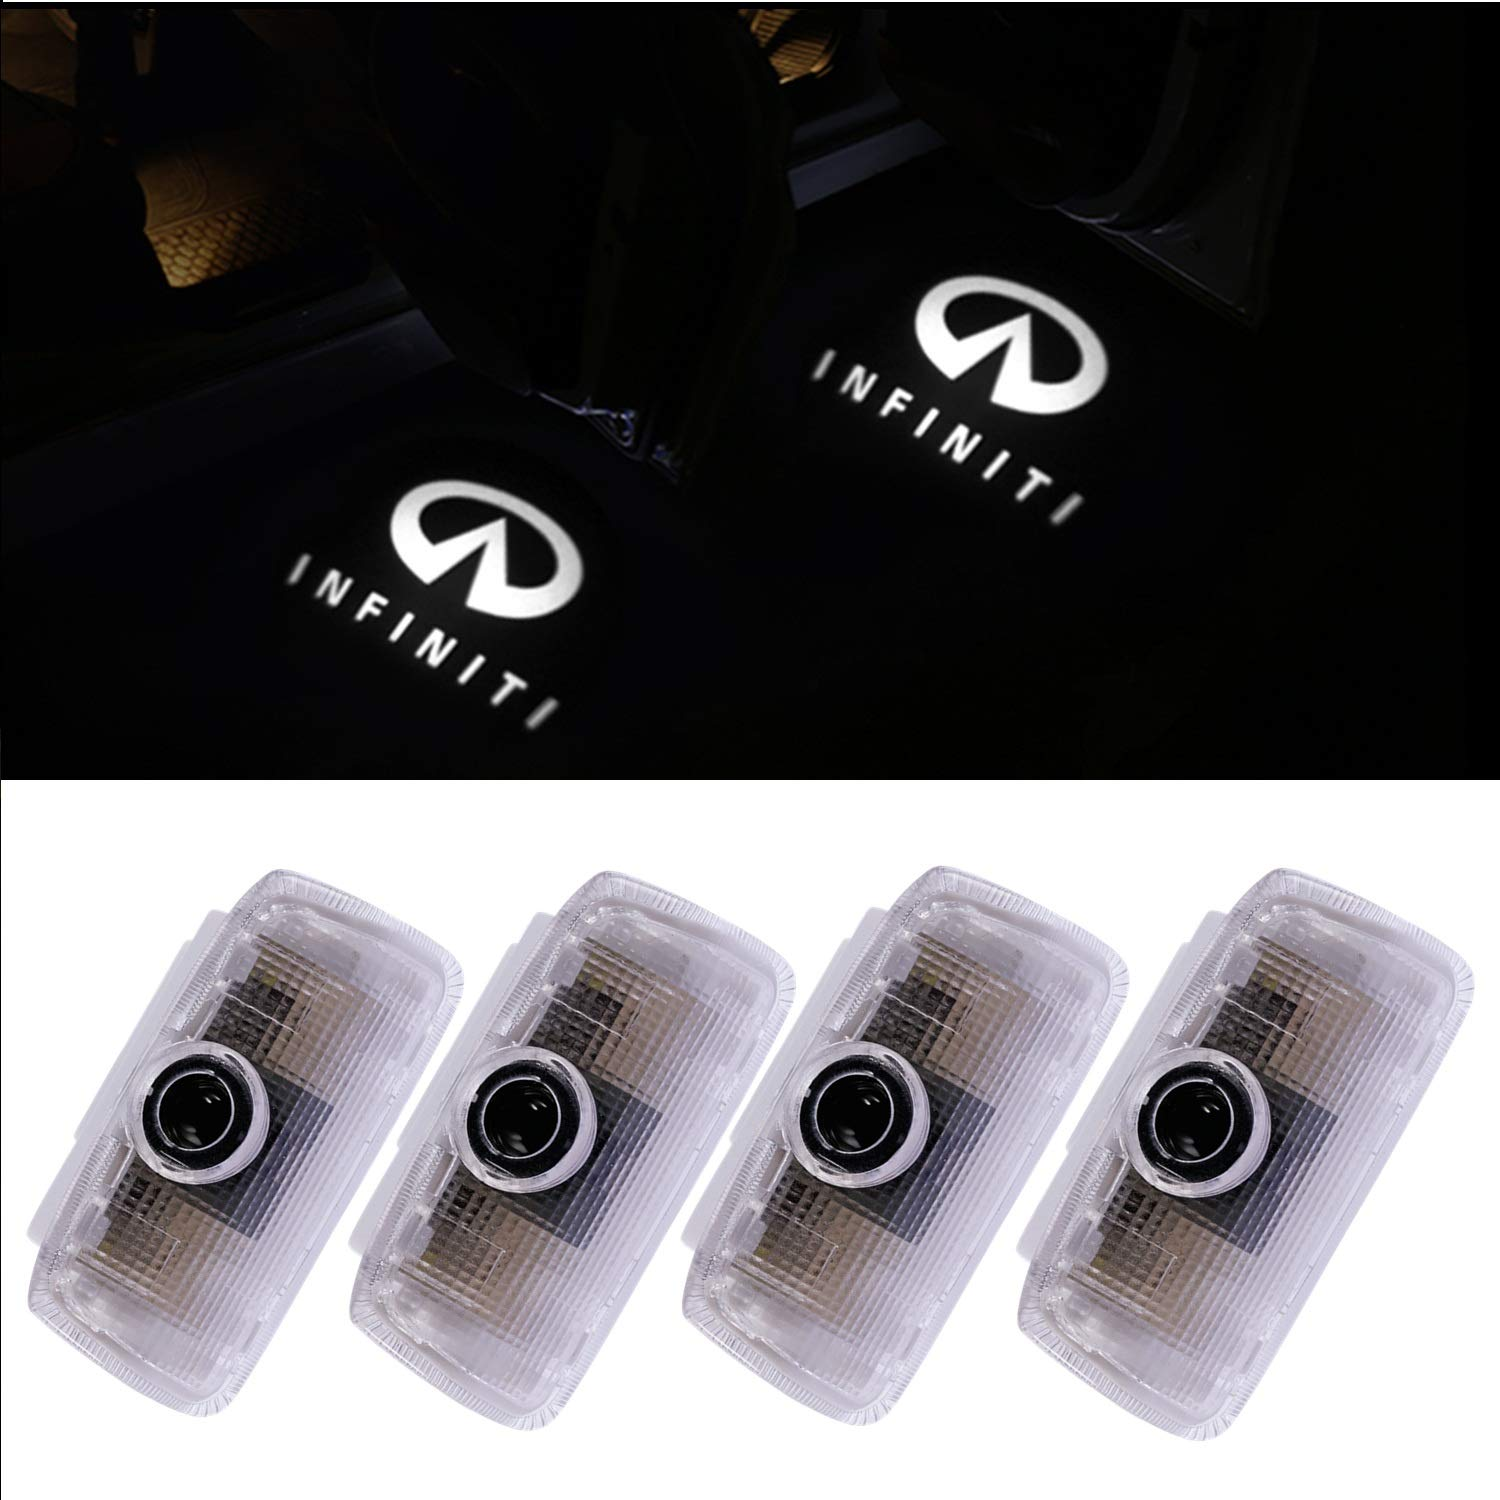 4 PCS Infiniti Q50 Accessories Door Logo Led Lights Projector Welcome Ghost Shadow Light for Infiniti EX FX G Q50 Q70 QX70 QX50 QX80 Door Lights CHUNLING